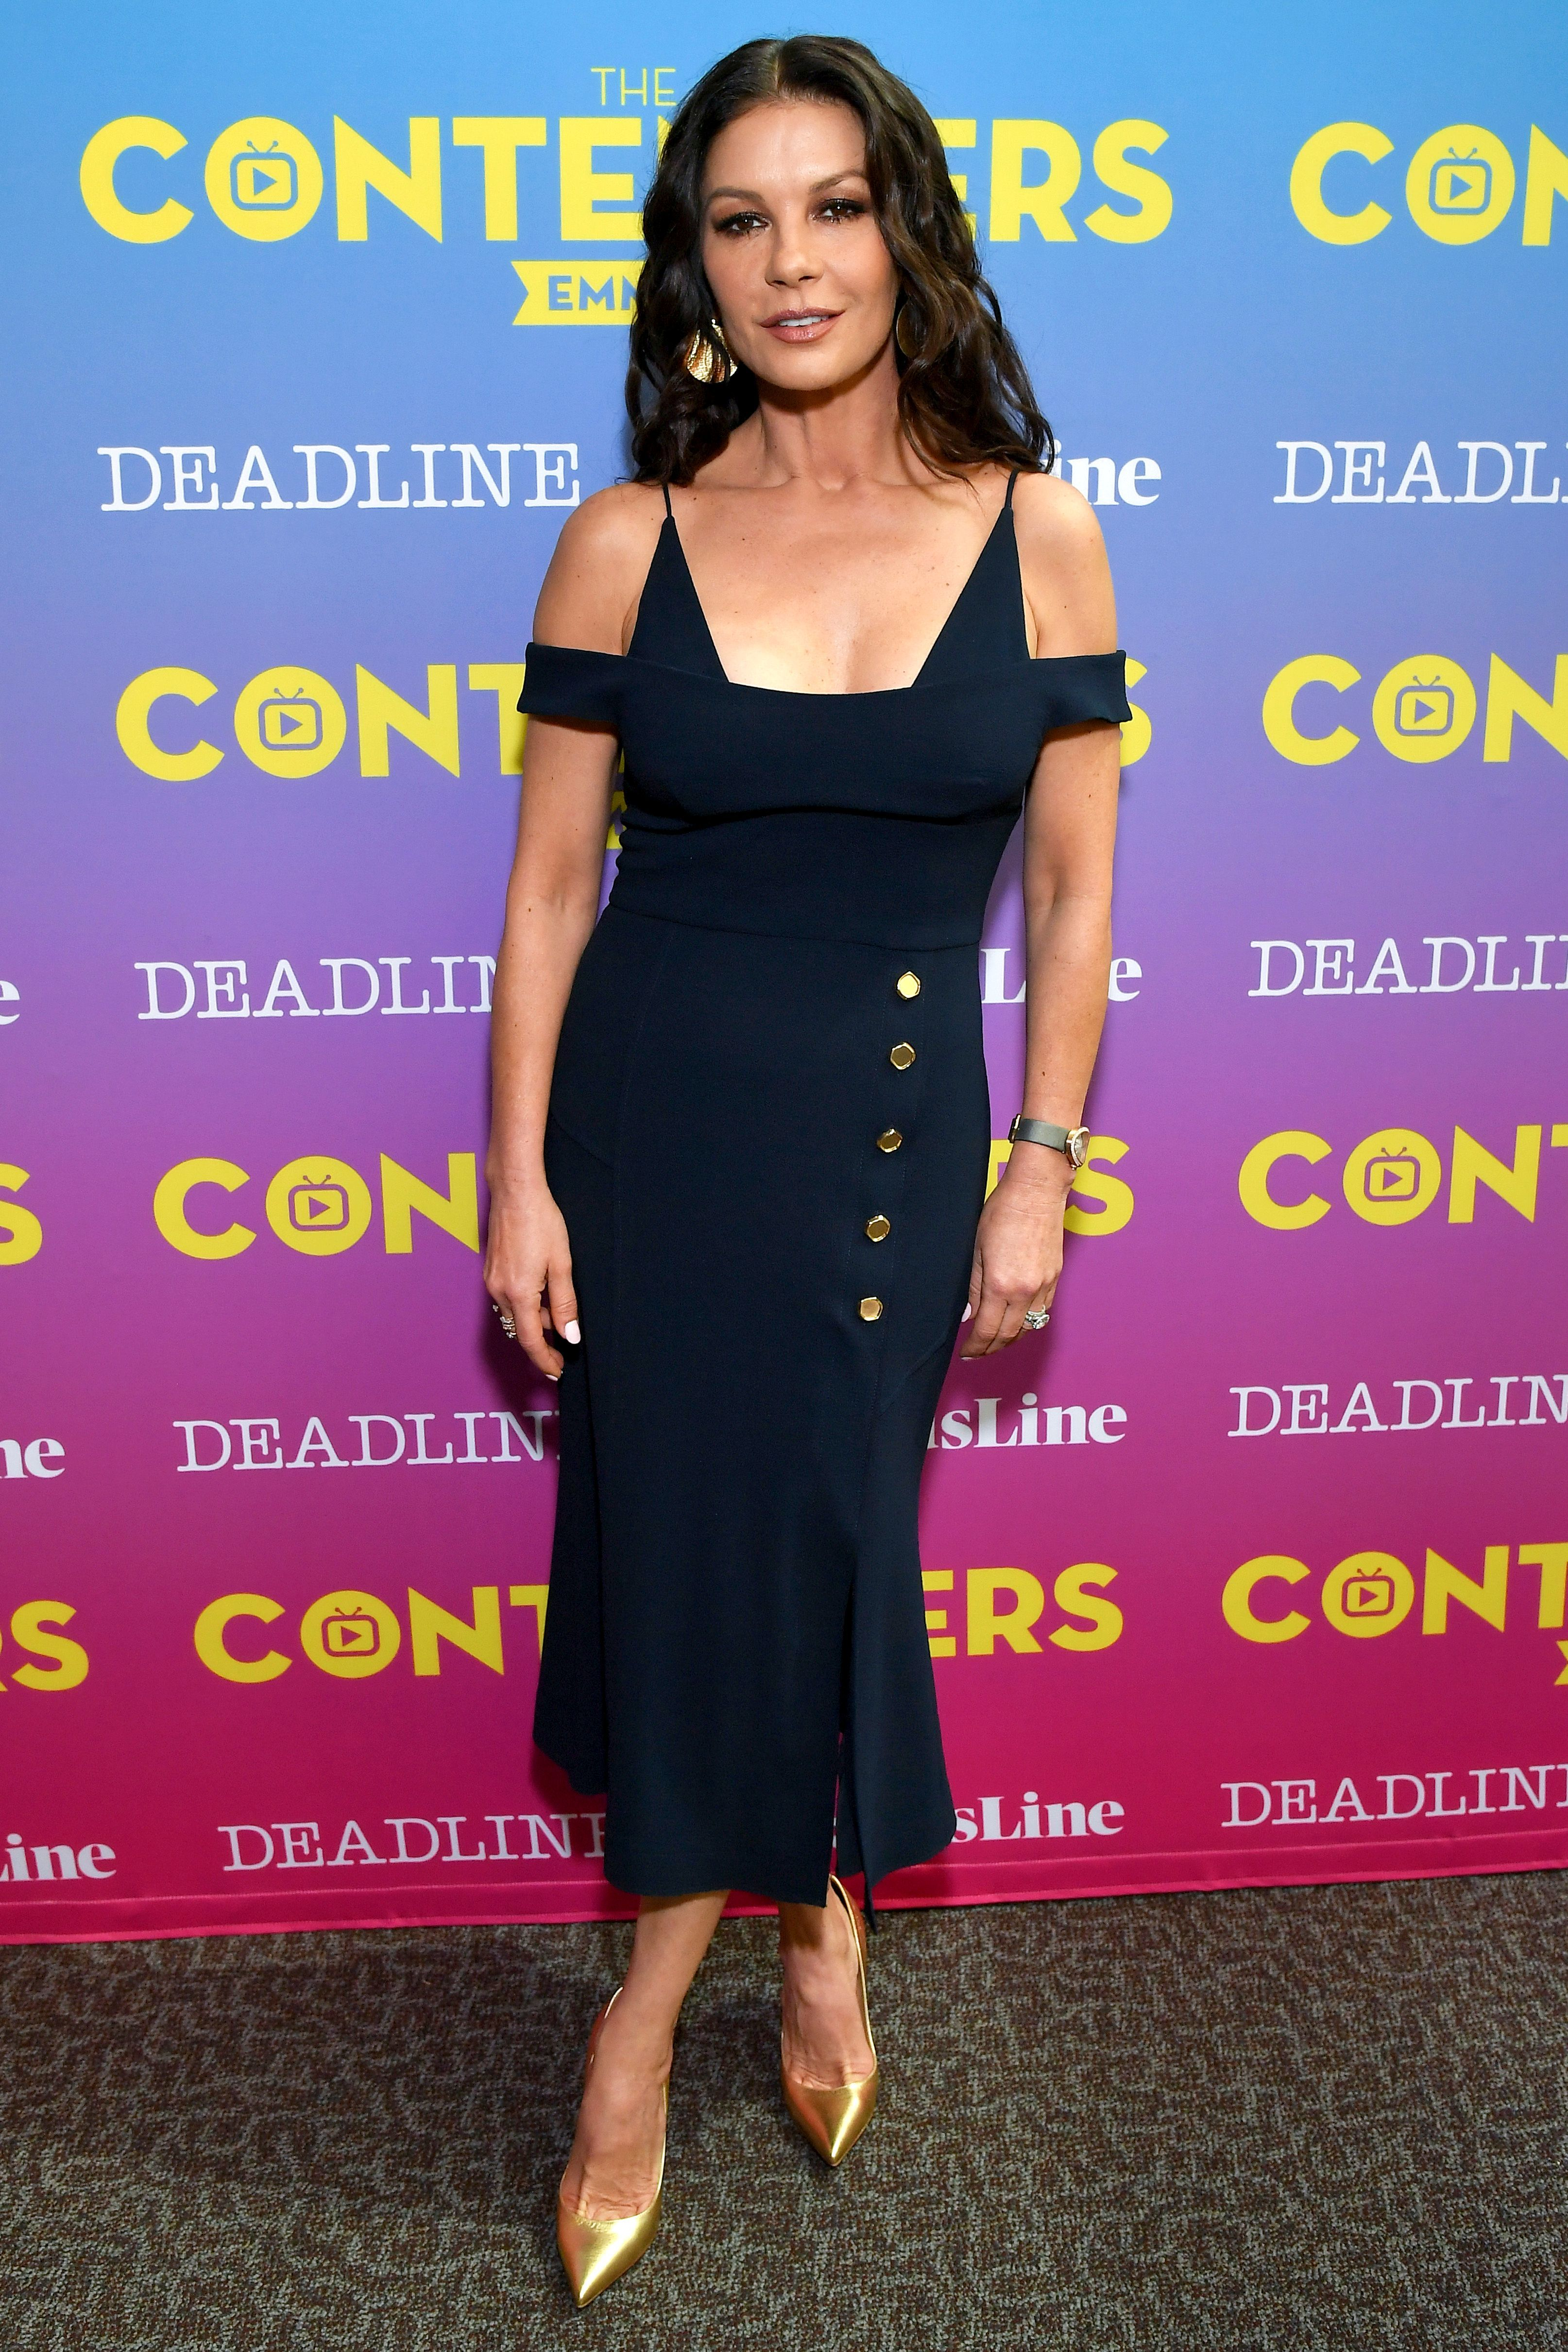 Catherine Zeta Jones attends The Contenders Emmys presented by Deadline Hollywood in Los Angeles on April 15, 2018.